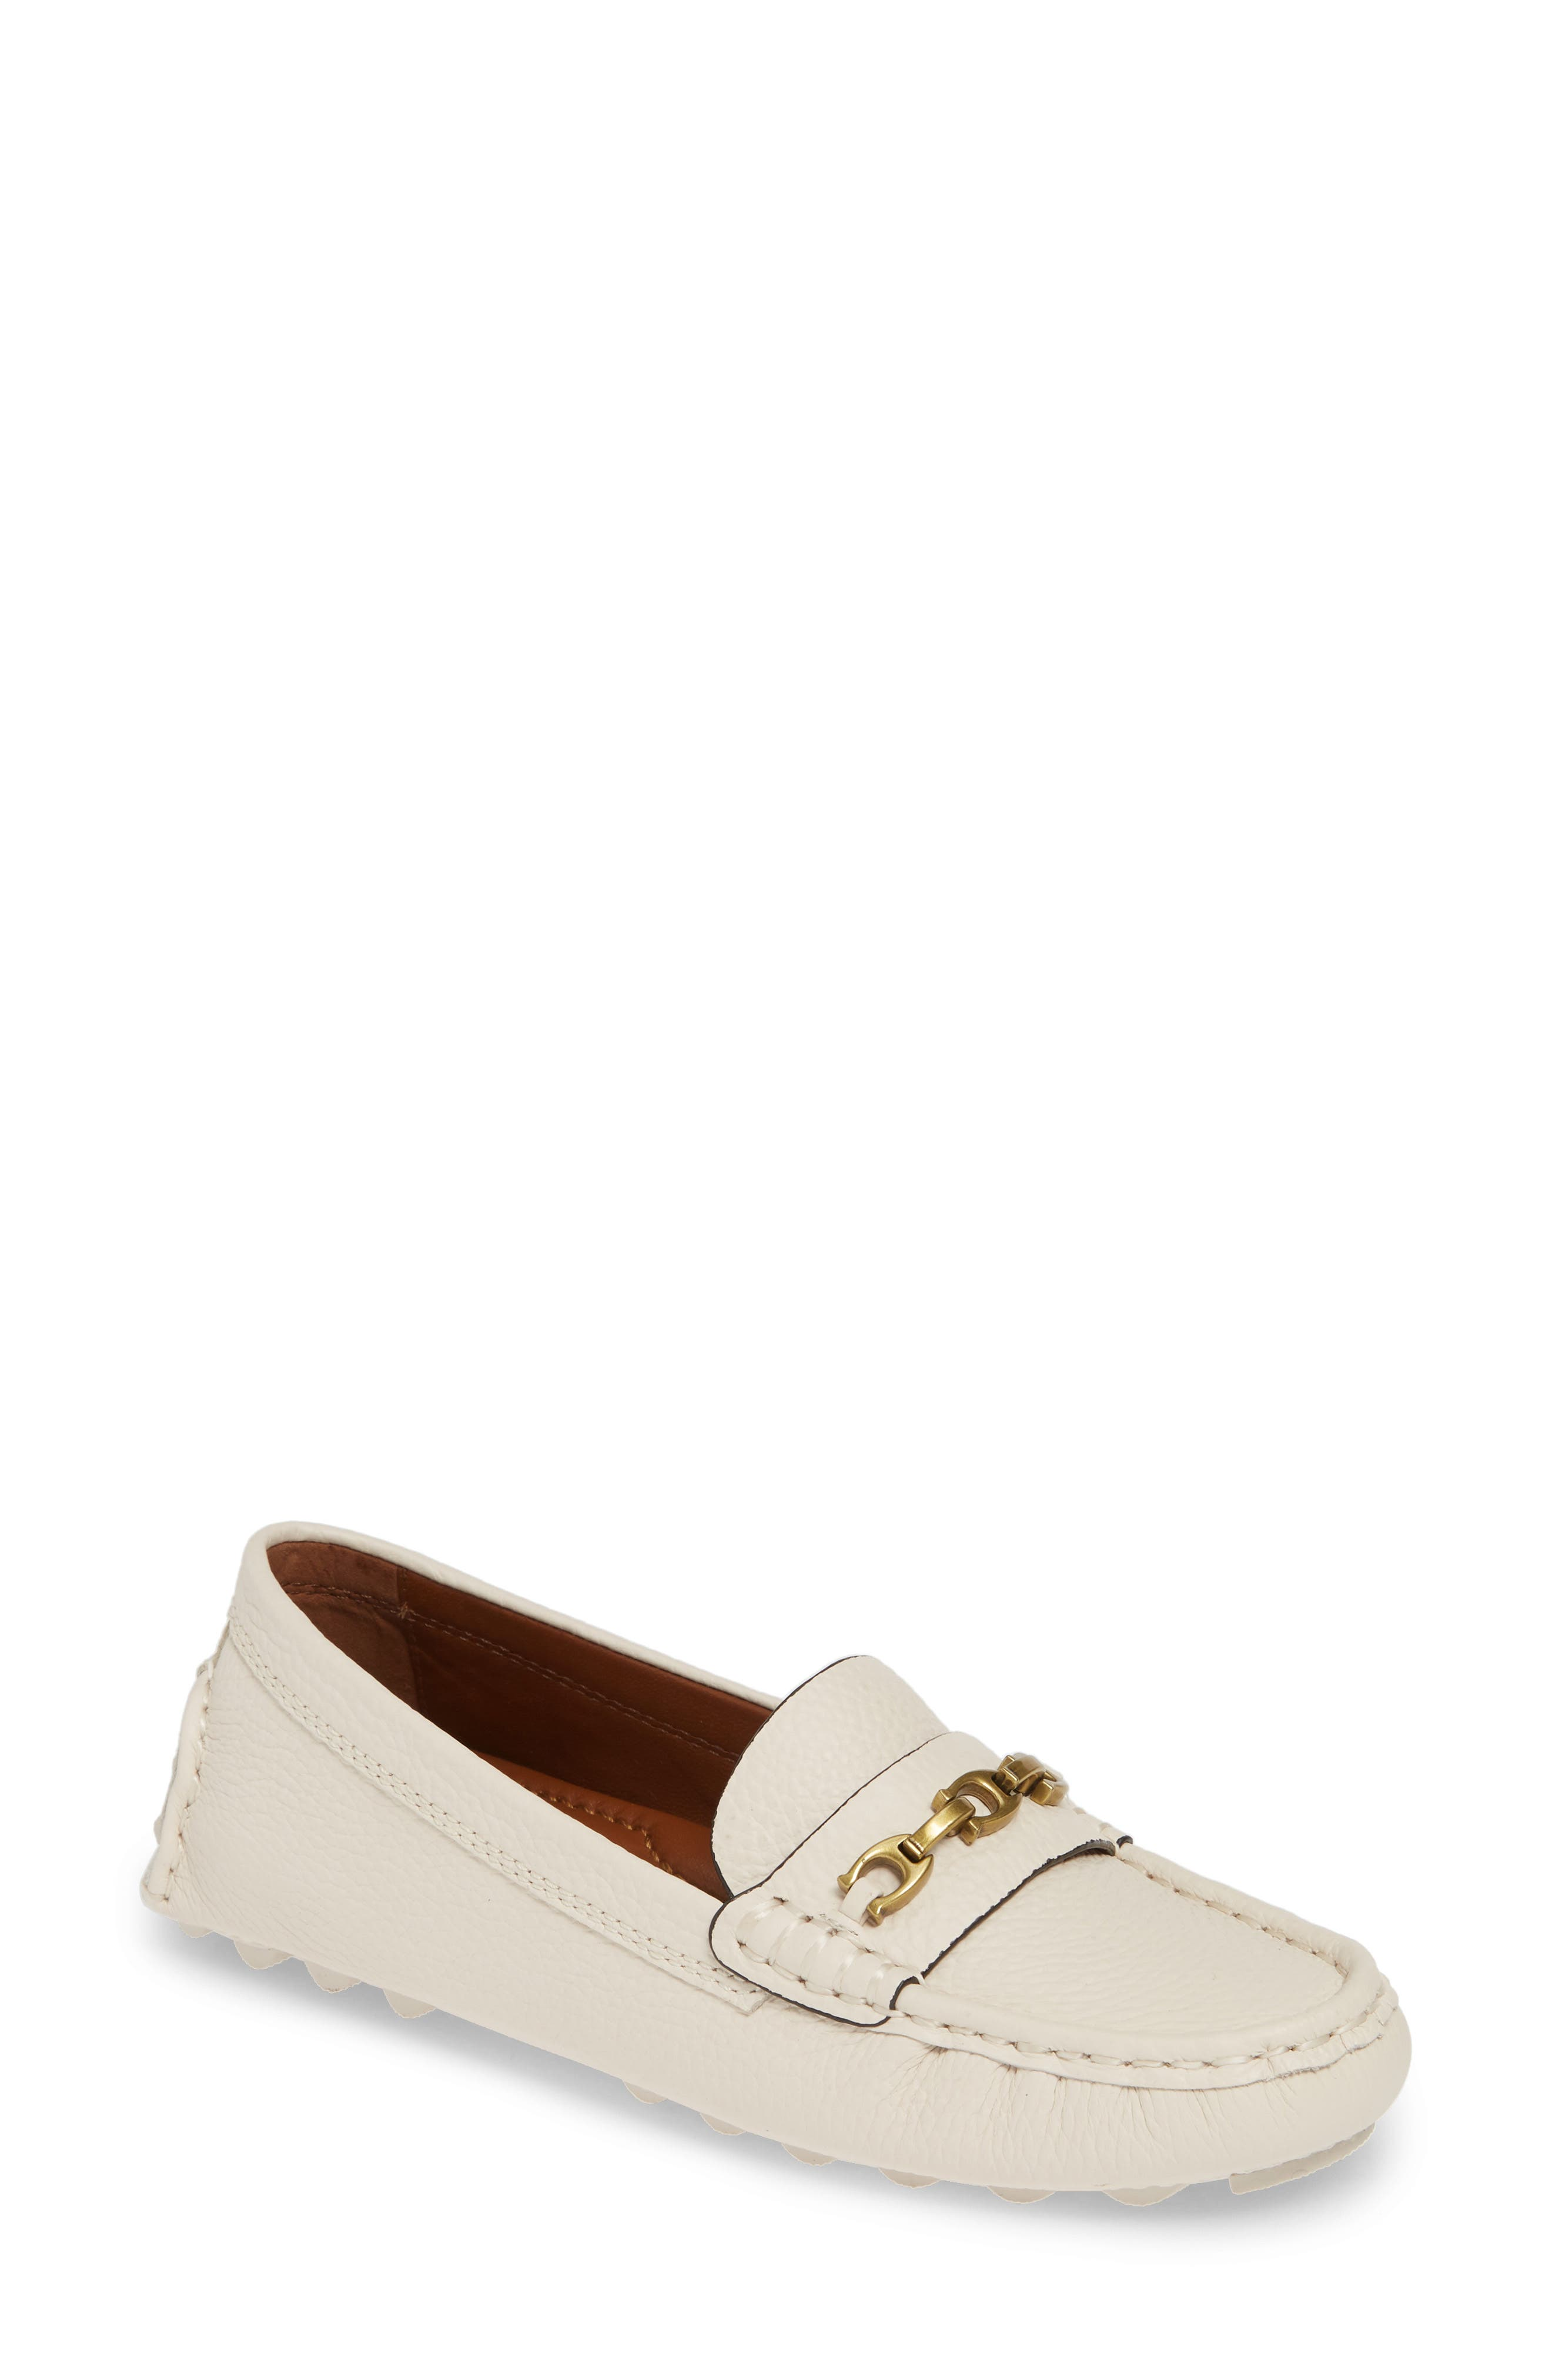 COACH, Crosby Driver Loafer, Main thumbnail 1, color, CHALK LEATHER